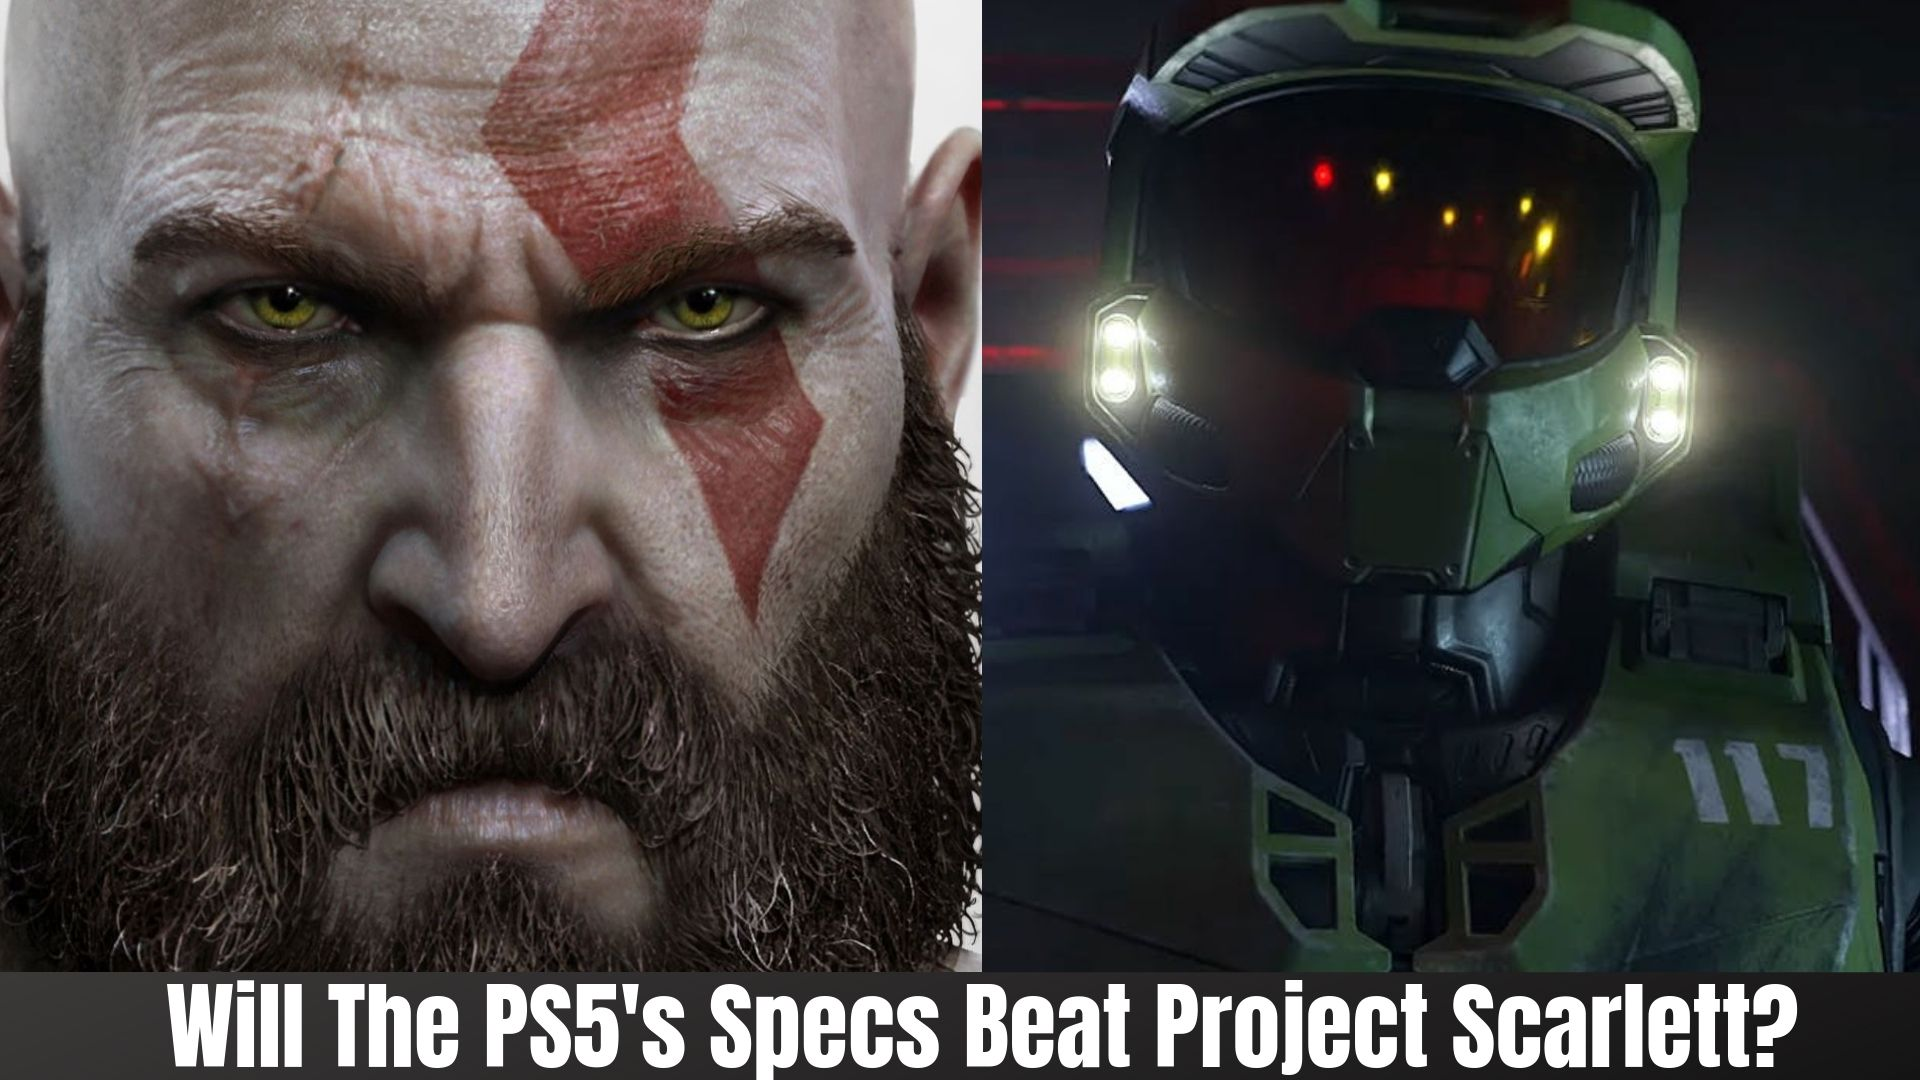 PS5 is more powerful than Project Scarlett